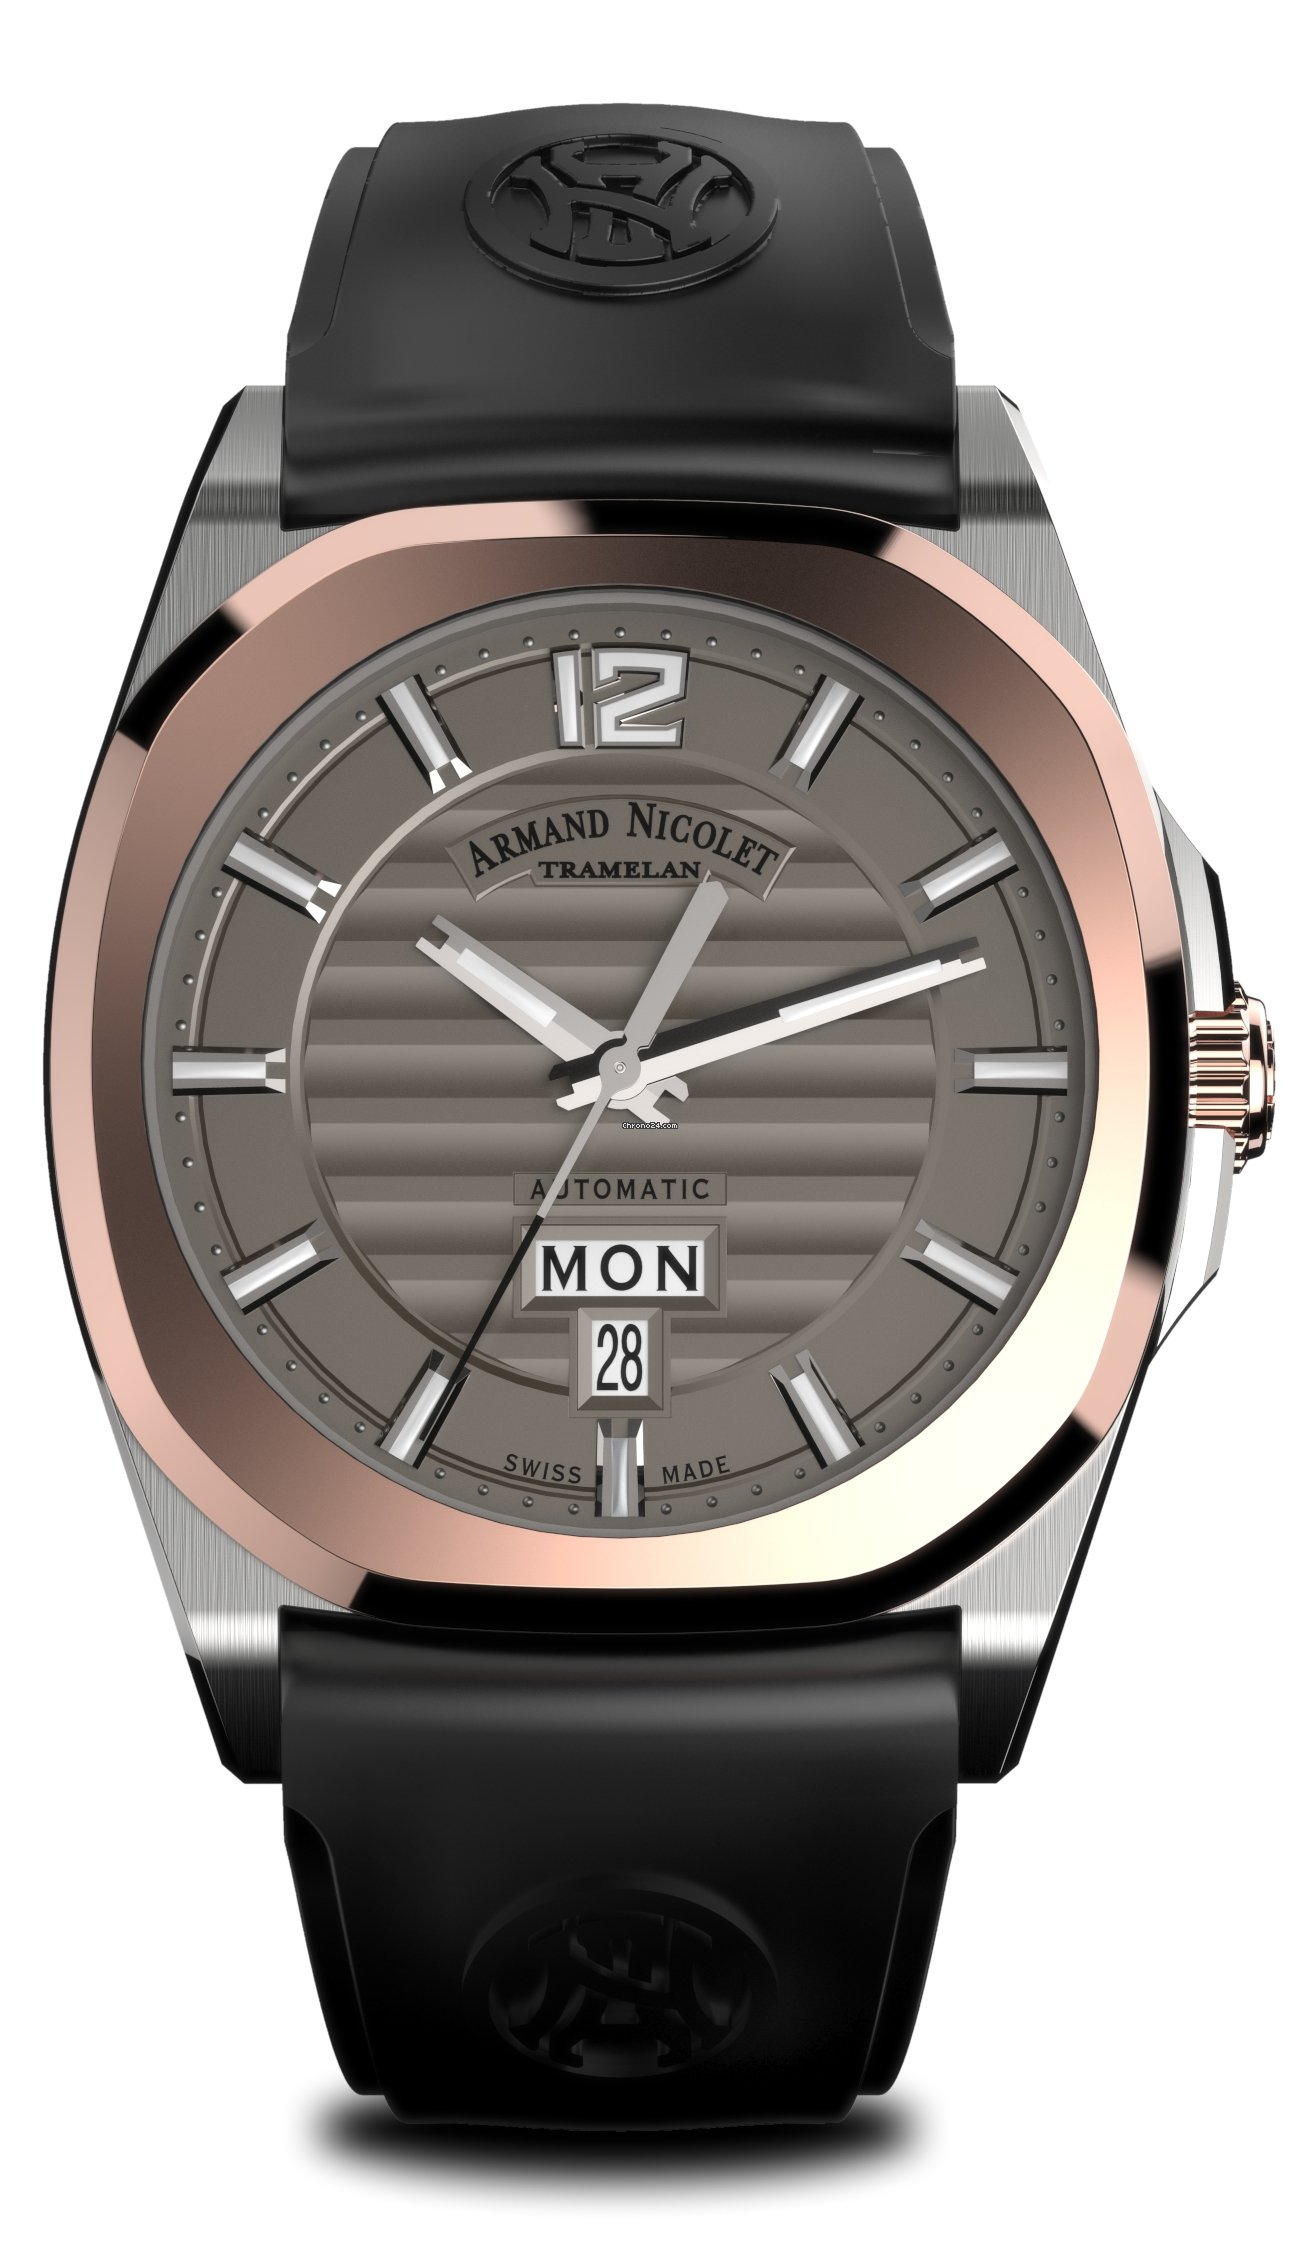 Rubber Mand Armand Nicolet J09 Day Date D650aaa Gr Gg4710n